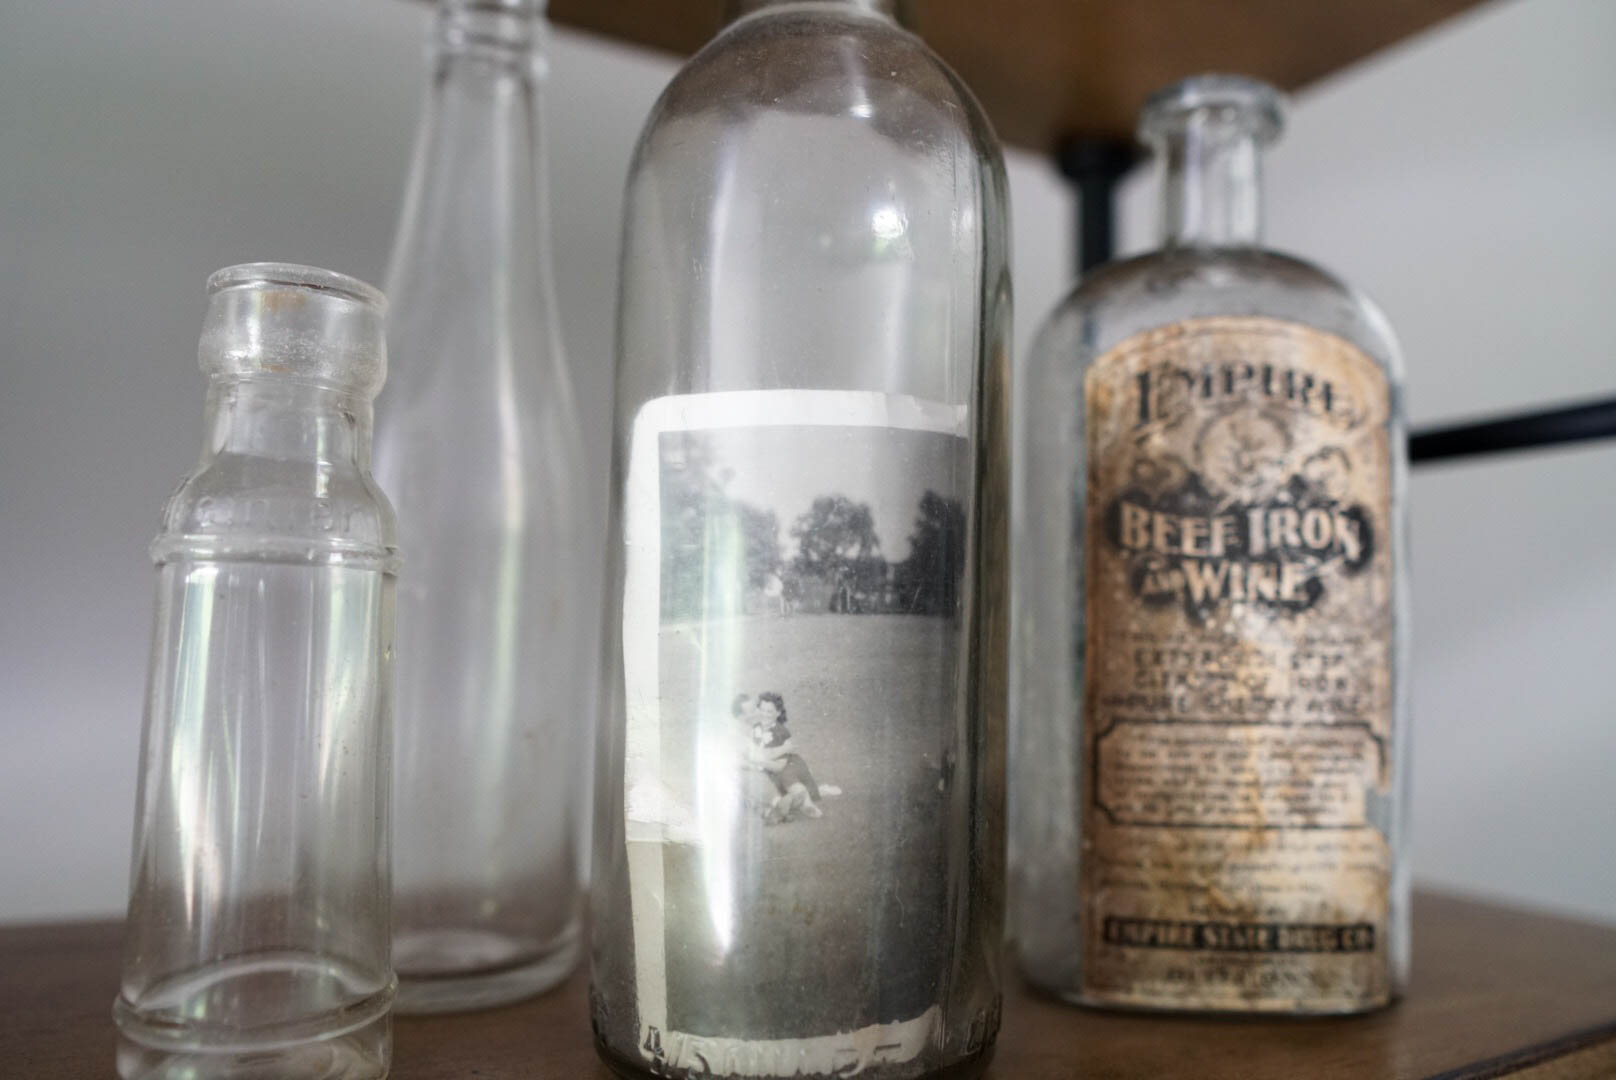 An antique bottle to display one of my favorite family photos.